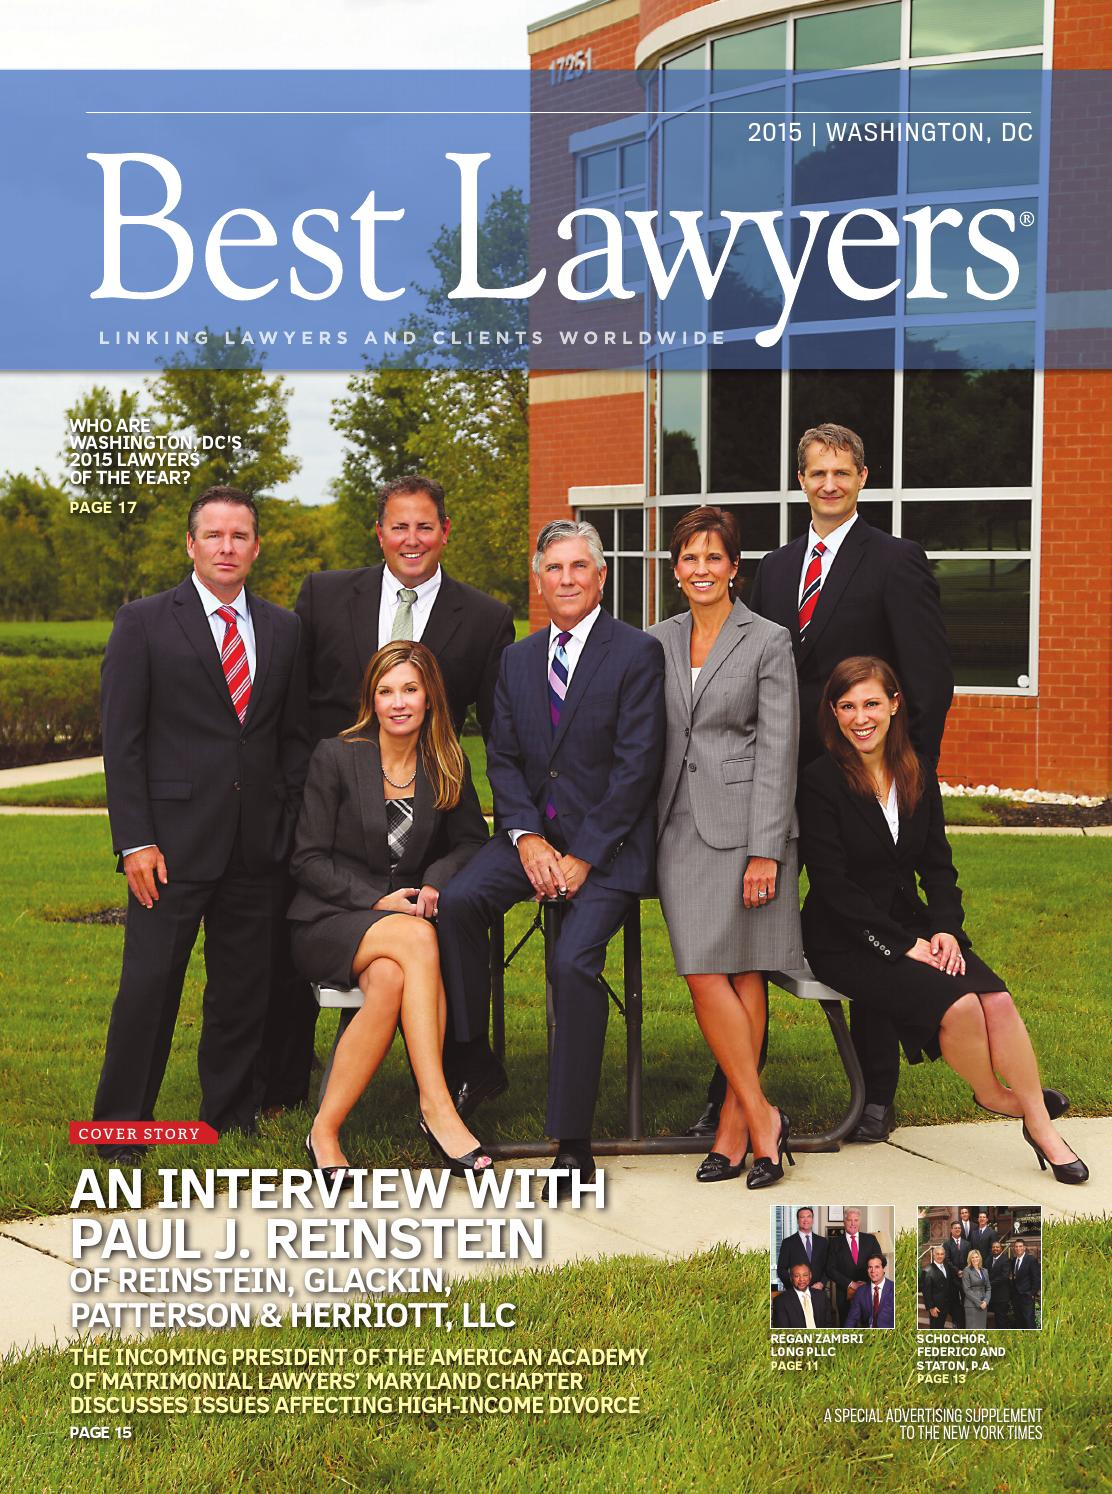 Best Lawyers in Washington, DC 2015 by Best Lawyers - issuu